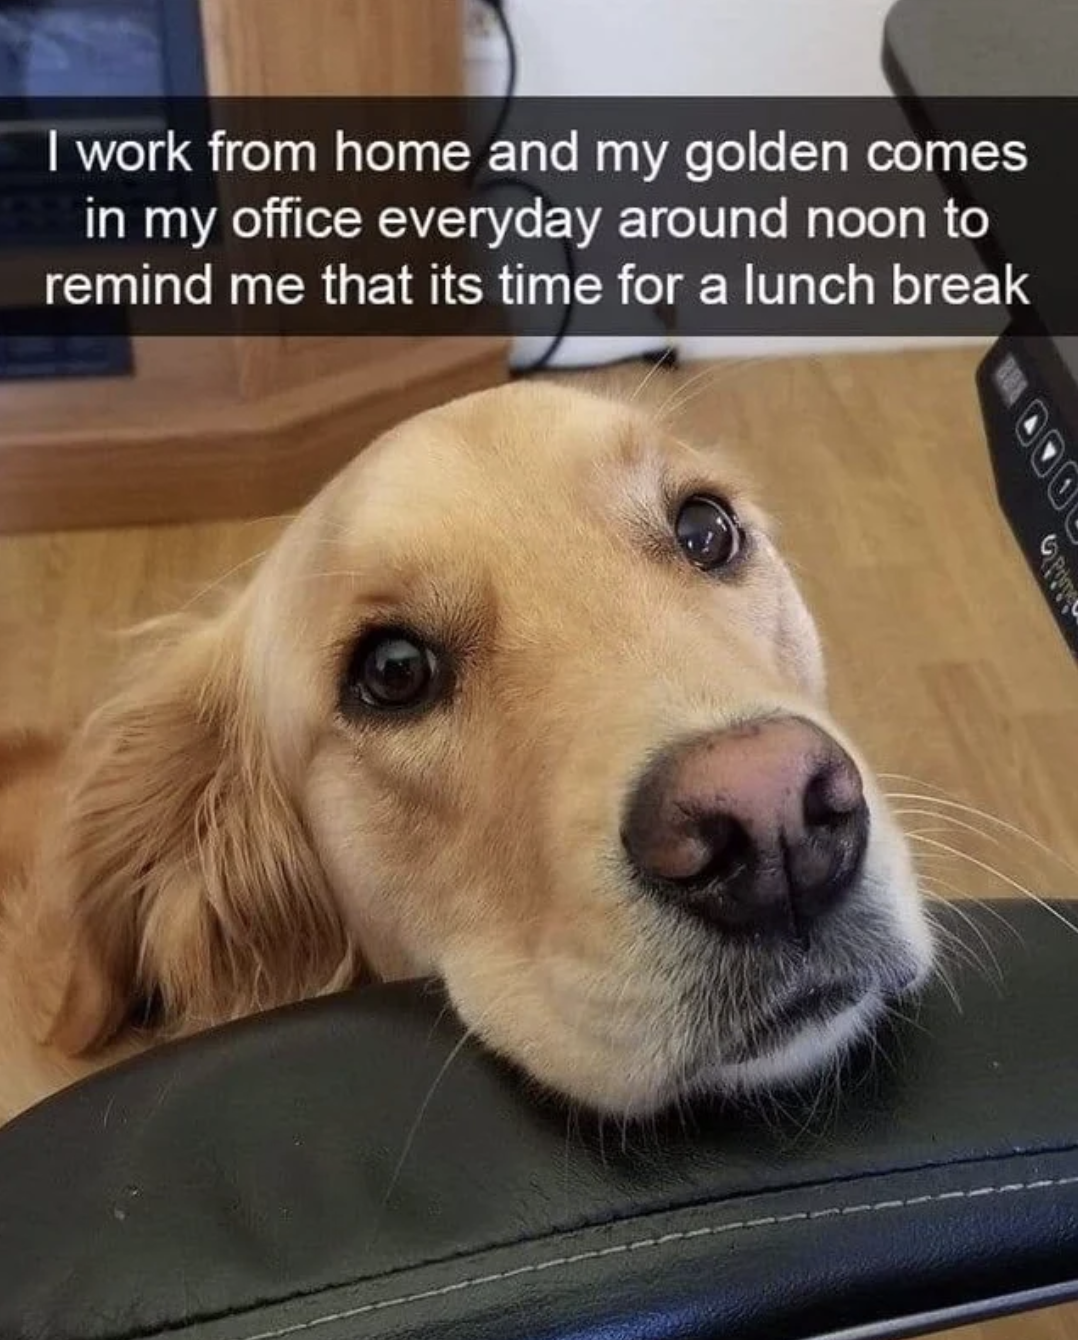 """A golden retriever resting his head on a desk chair with the text """"I work from home and my golden comes in my office everyday around noon to remind me that it's time for a lunch break"""""""